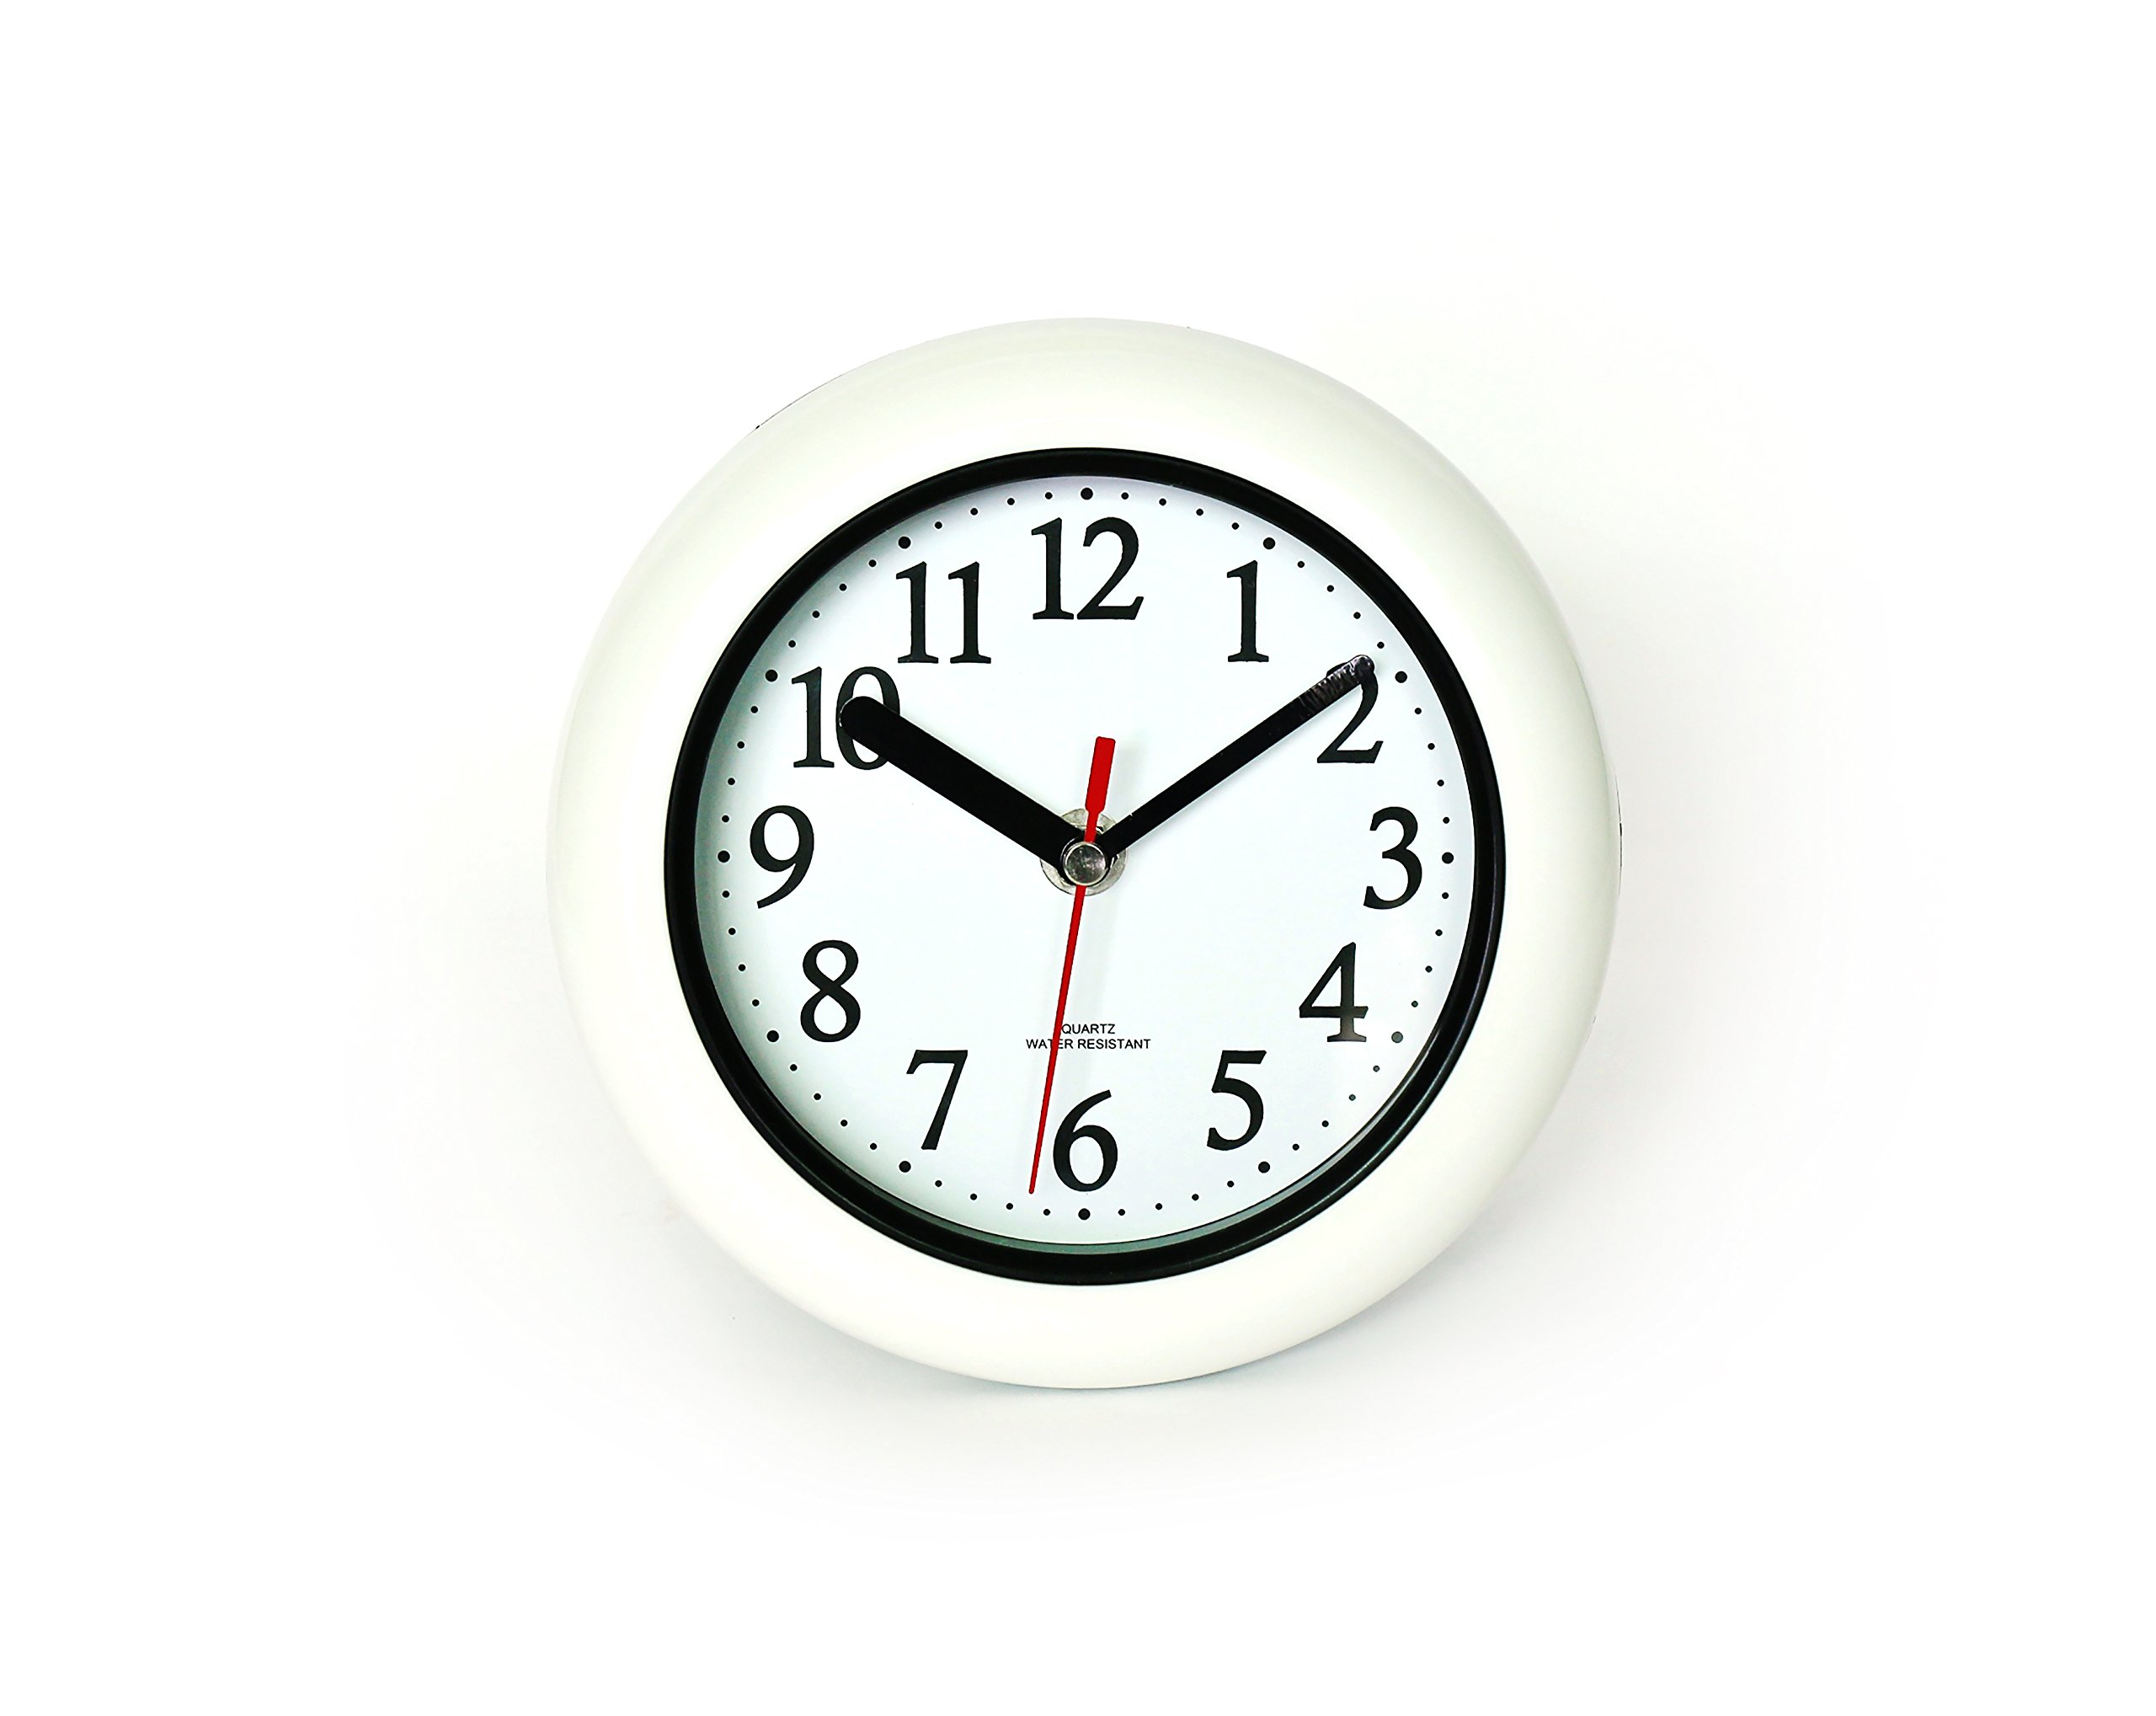 """Perfect White Shell Water Resistant Clock, Quartz Movement, Simple Design, 6.5"""" in Diameter, ABS Glass Front, Flexible Options to Hang or to Stand. Withstand Water Vapor and Moisture. - ★Measuring Frame 6.5 inches in diameter. Thickness approximately 1 inch ☆Requires one Zinc-Carbon AA battery (not included). ★Can withstand water vapor or moister. Perfect for restroom or kitchen. - wall-clocks, living-room-decor, living-room - 71tgM%2BLRYKL -"""